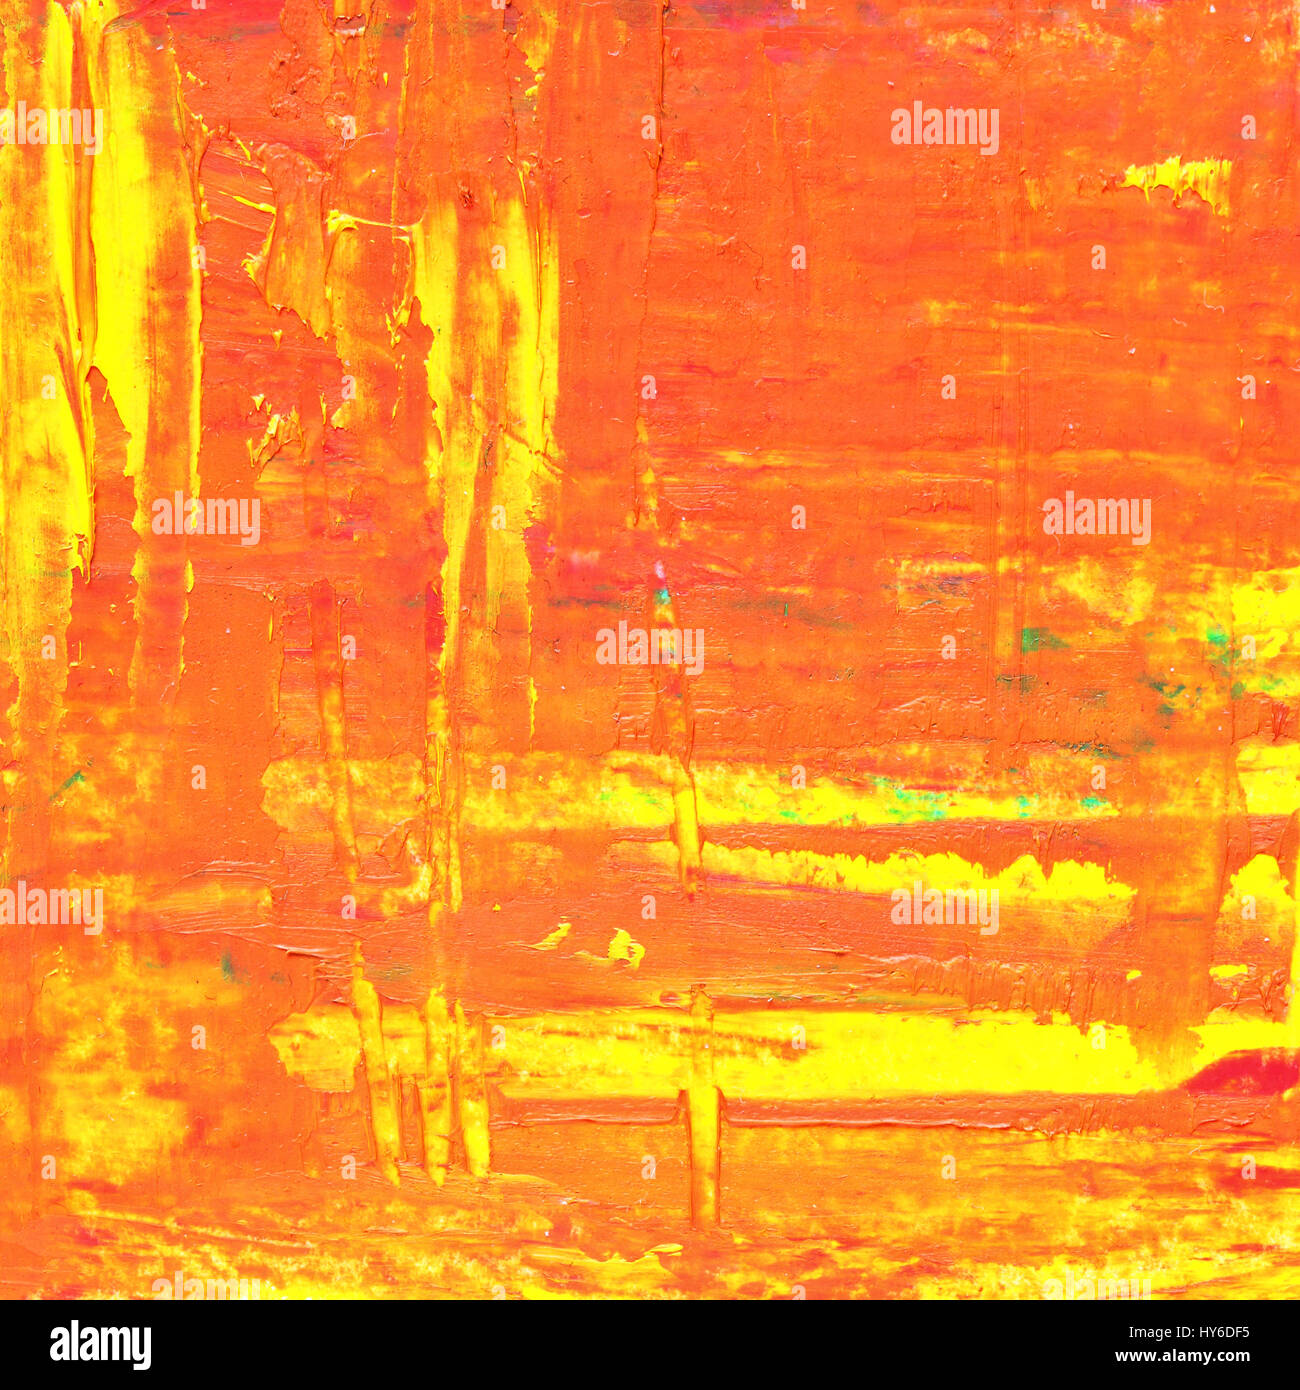 Orange oil painting texture with brush strokes. Abstract background - Stock Image